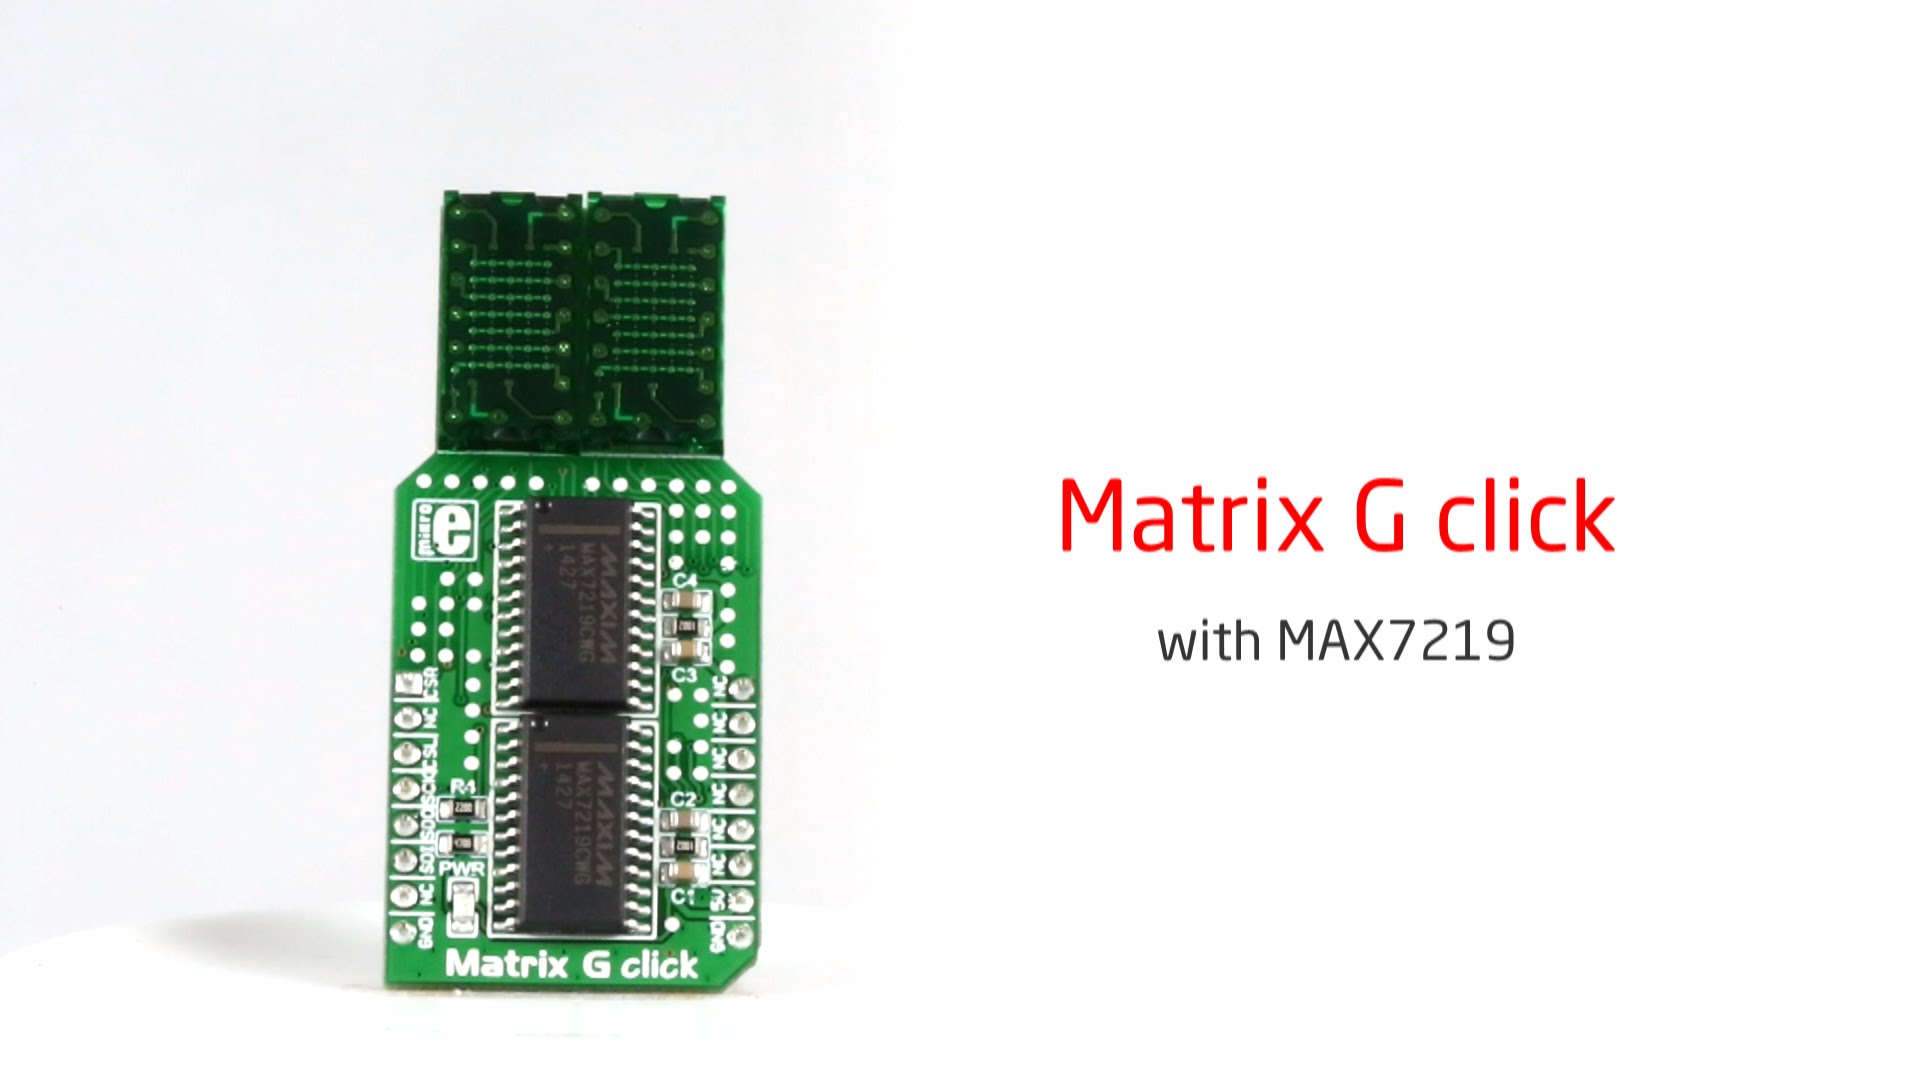 Check out these two new clicks with LED matrices and pick a color